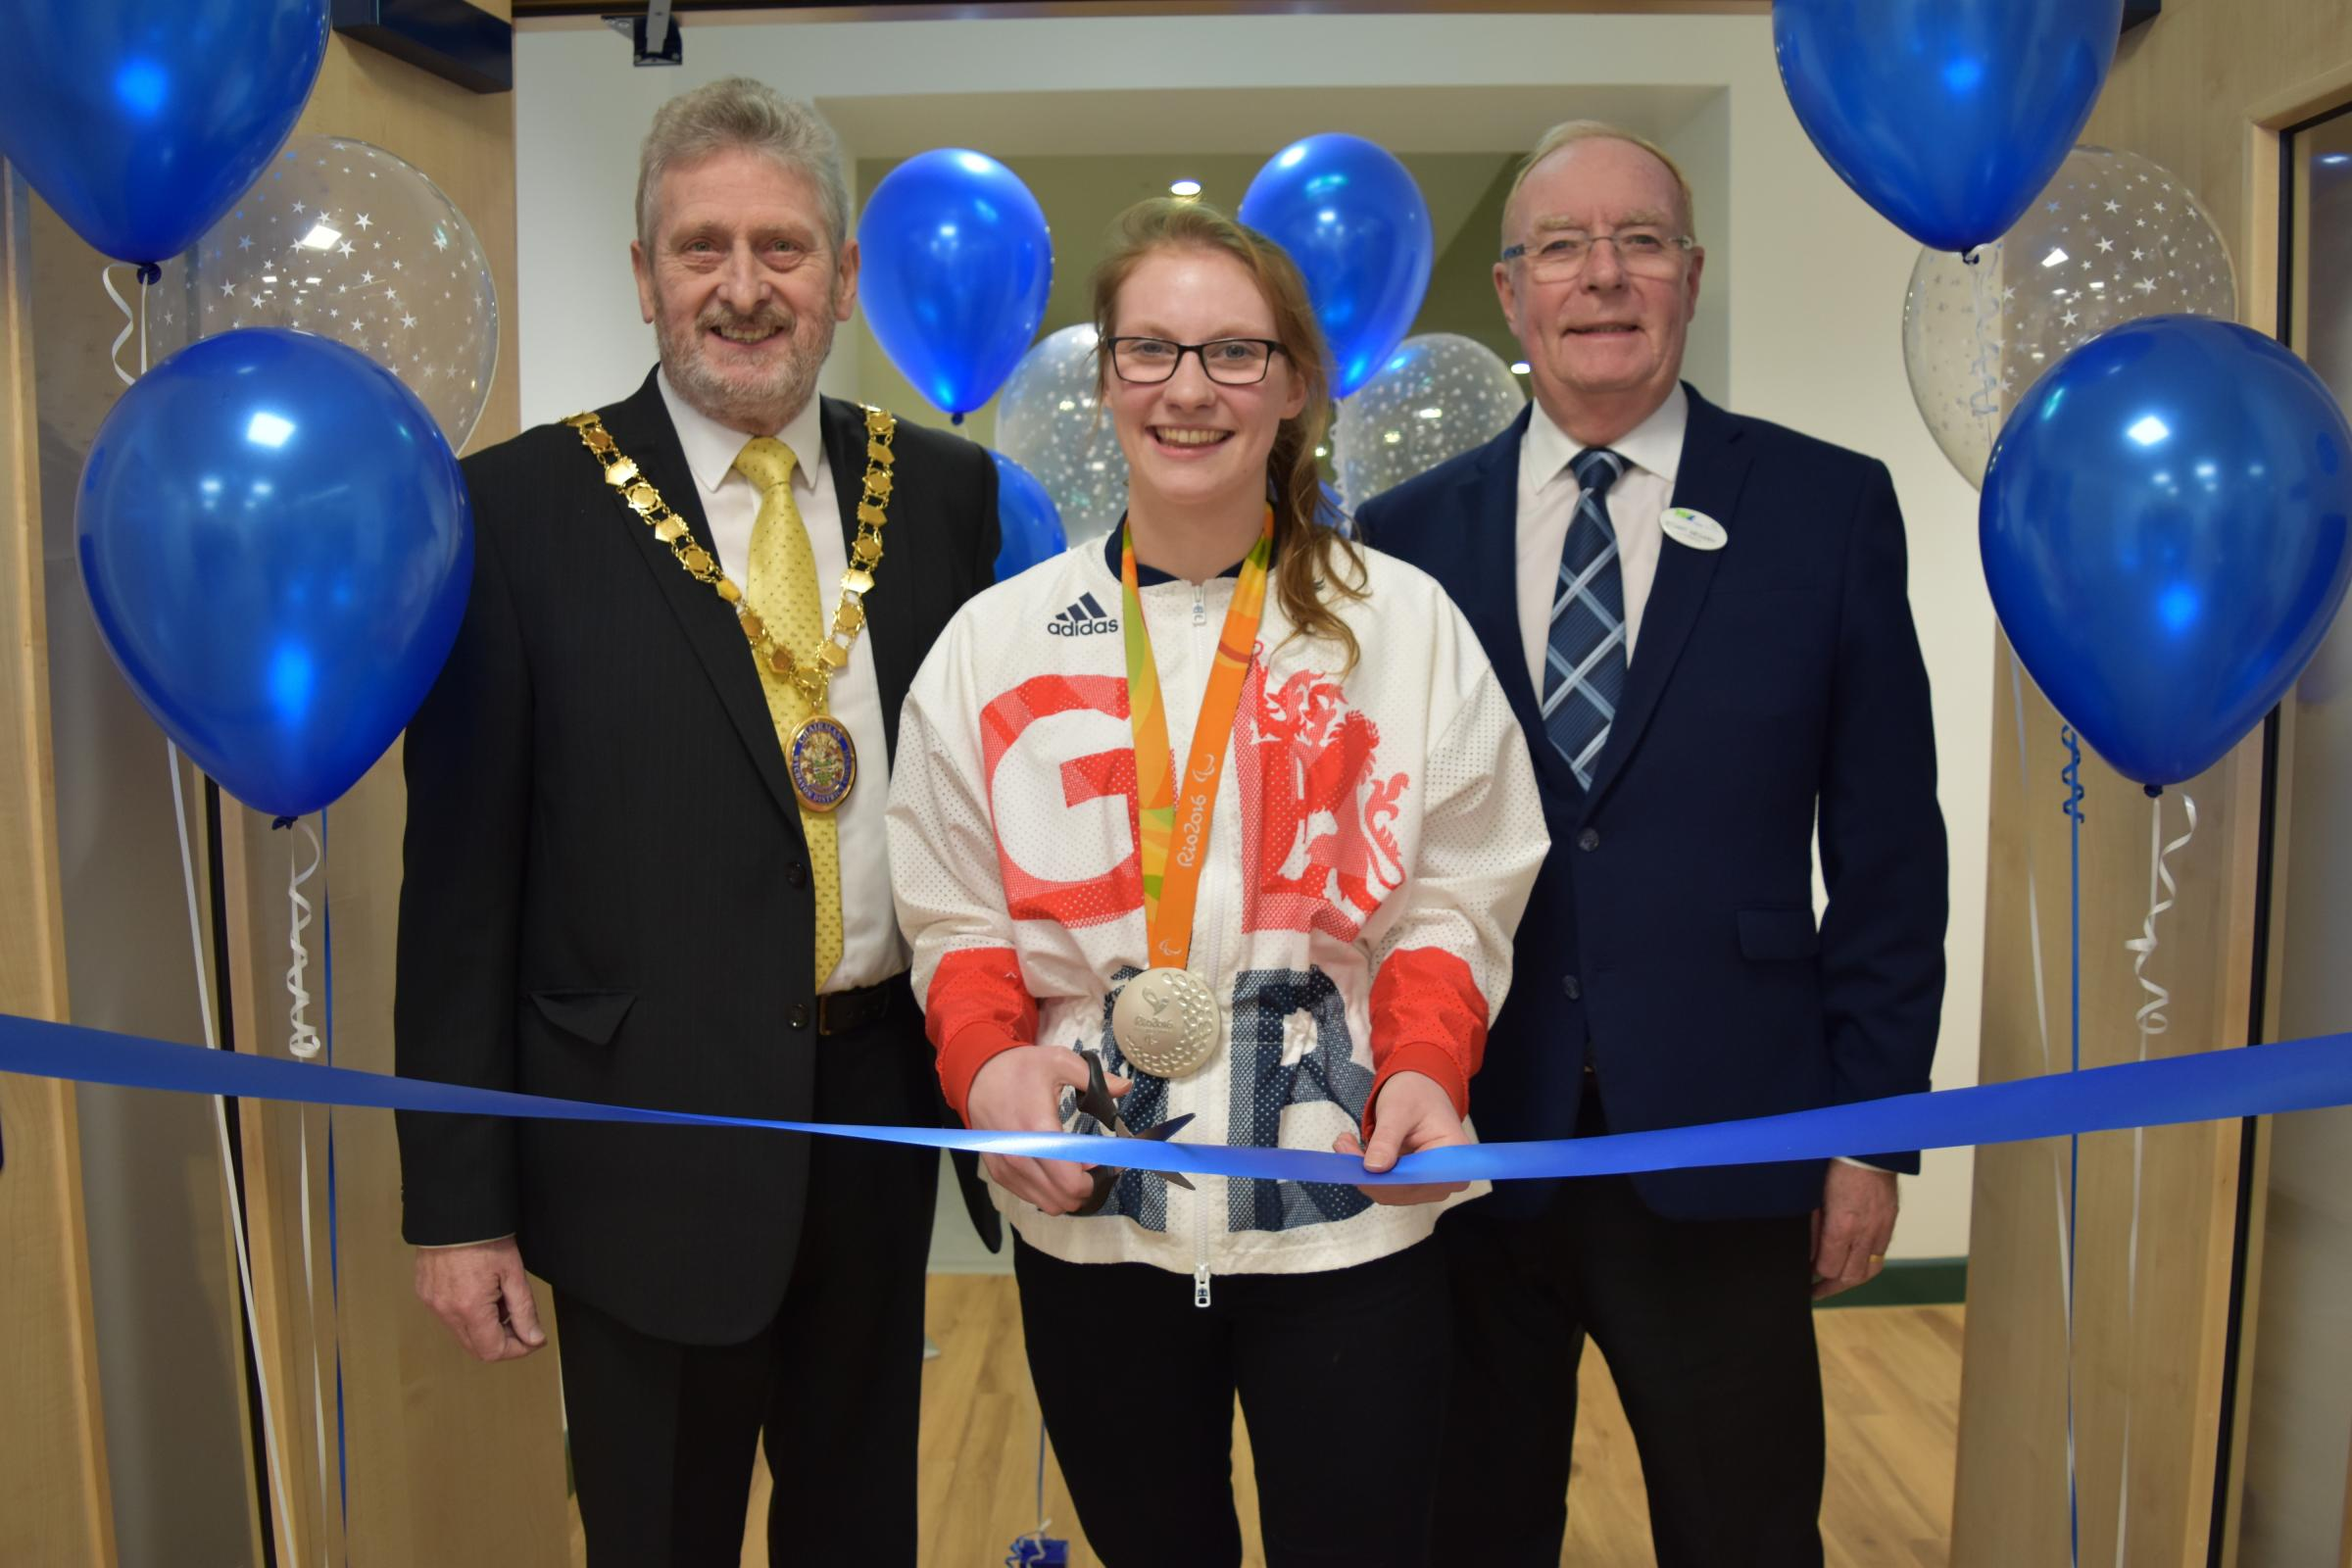 Chairman of Wychavon, Cllr. Tony Rowley, Paralympian, Rebecca Redfern and Chairman of Wychavon Leisure, Stuart Megarry